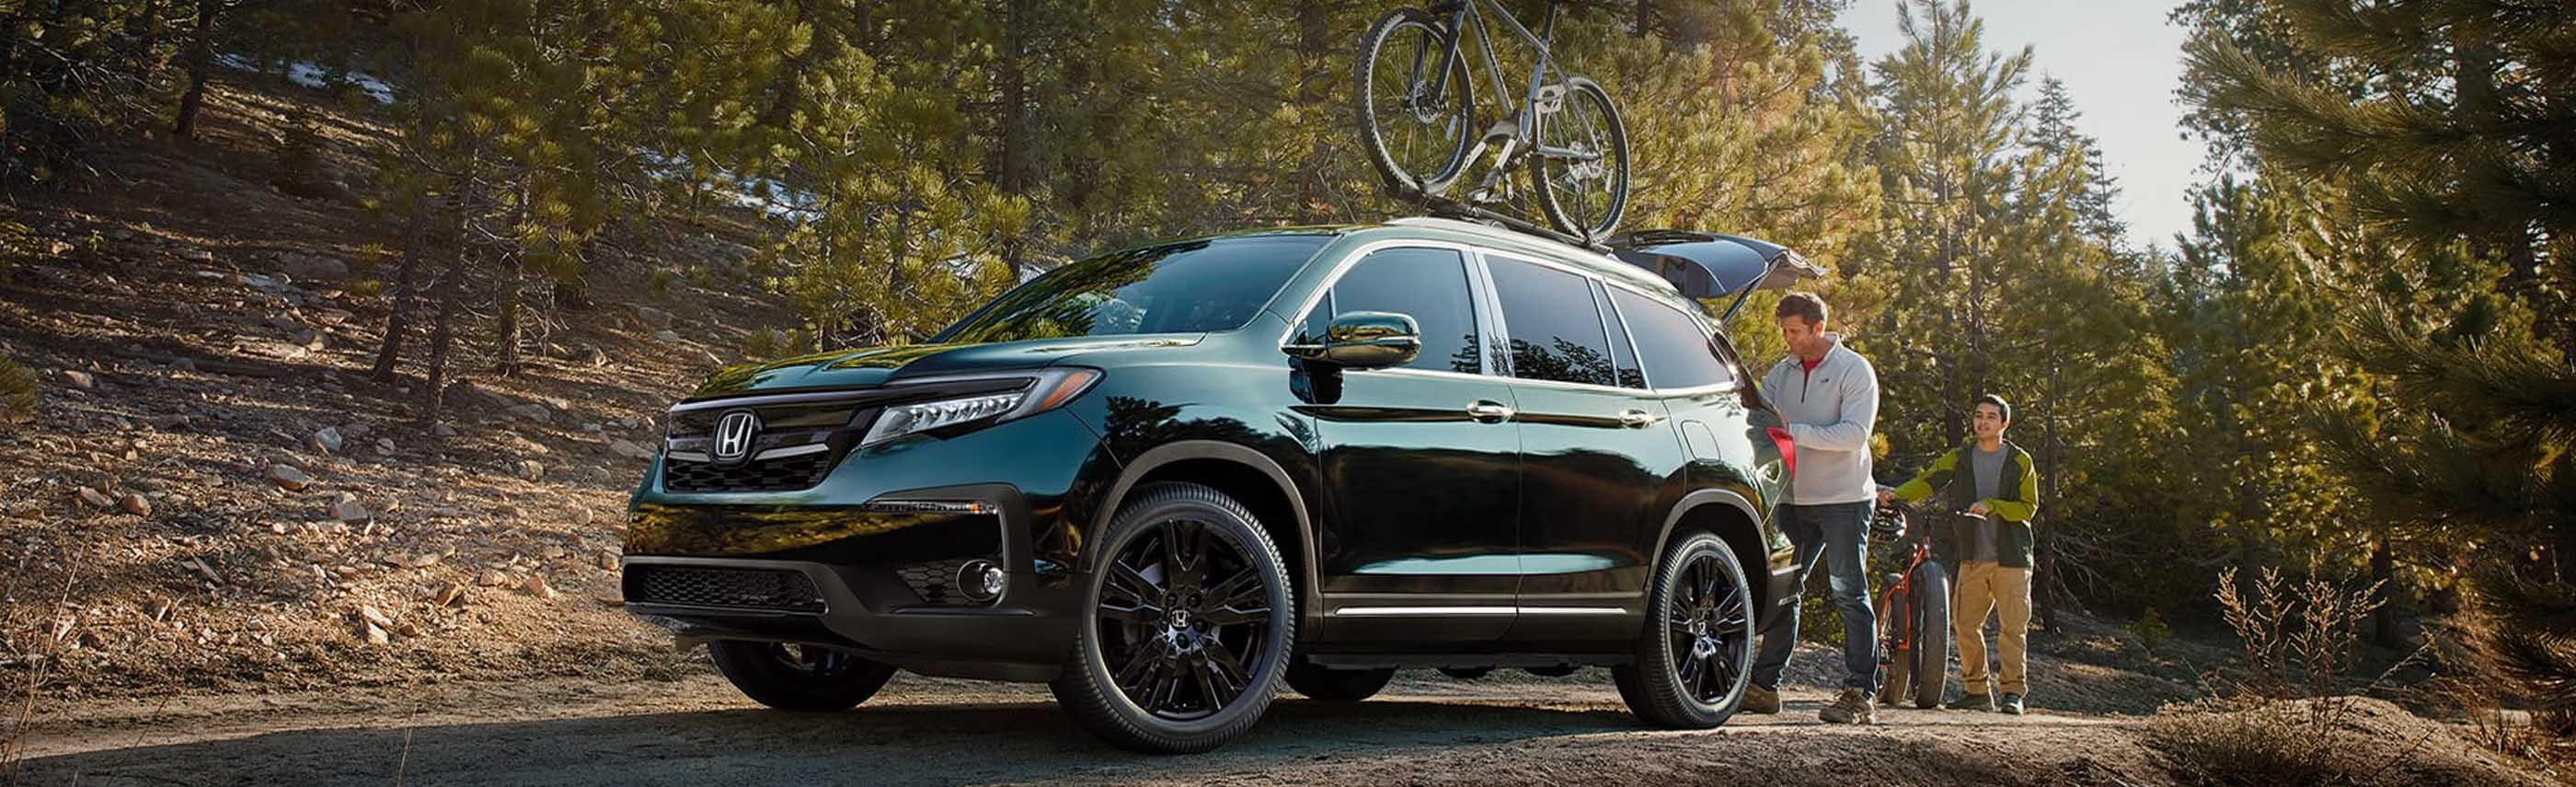 Snag A 2020 Pilot From Our Corpus Christi, Texas, Honda Dealer